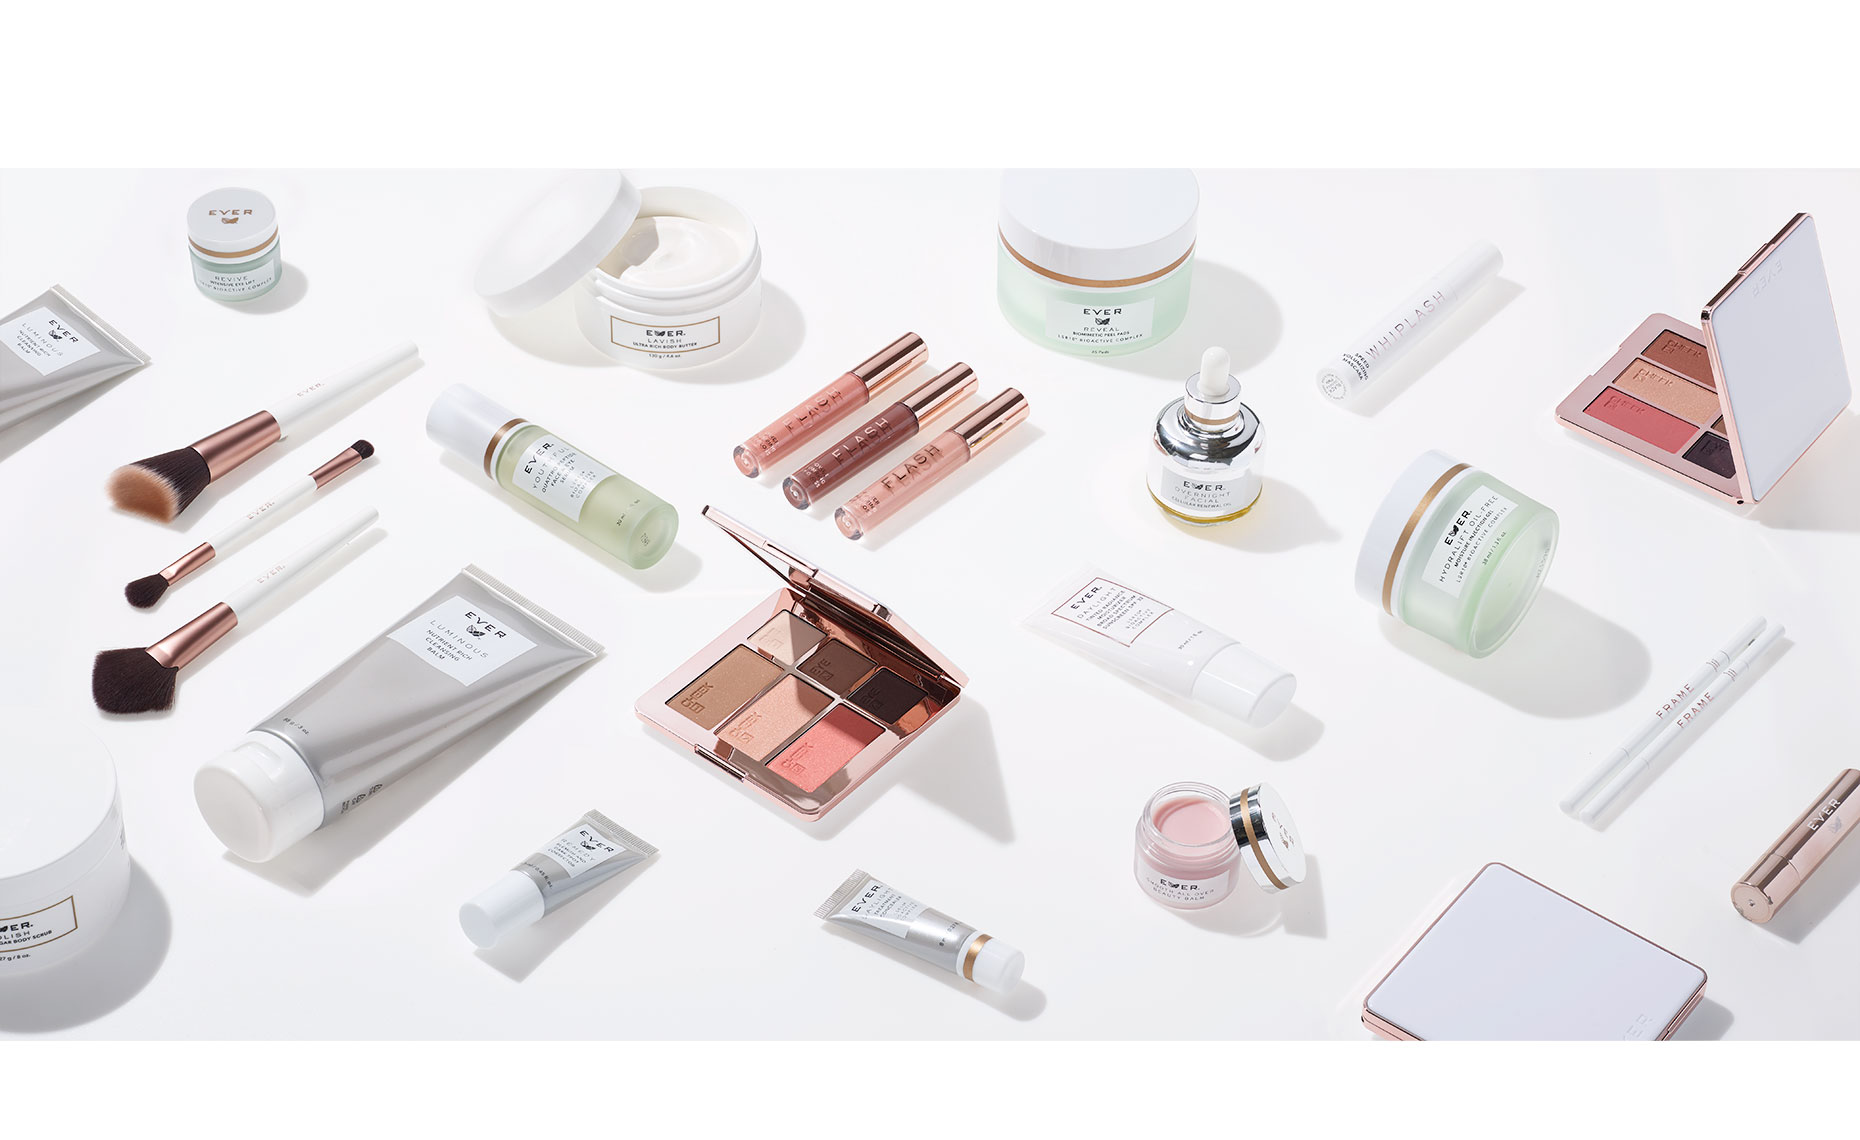 180215_Ever_Makeup_skincare_grid_Soft_Light_Heli_